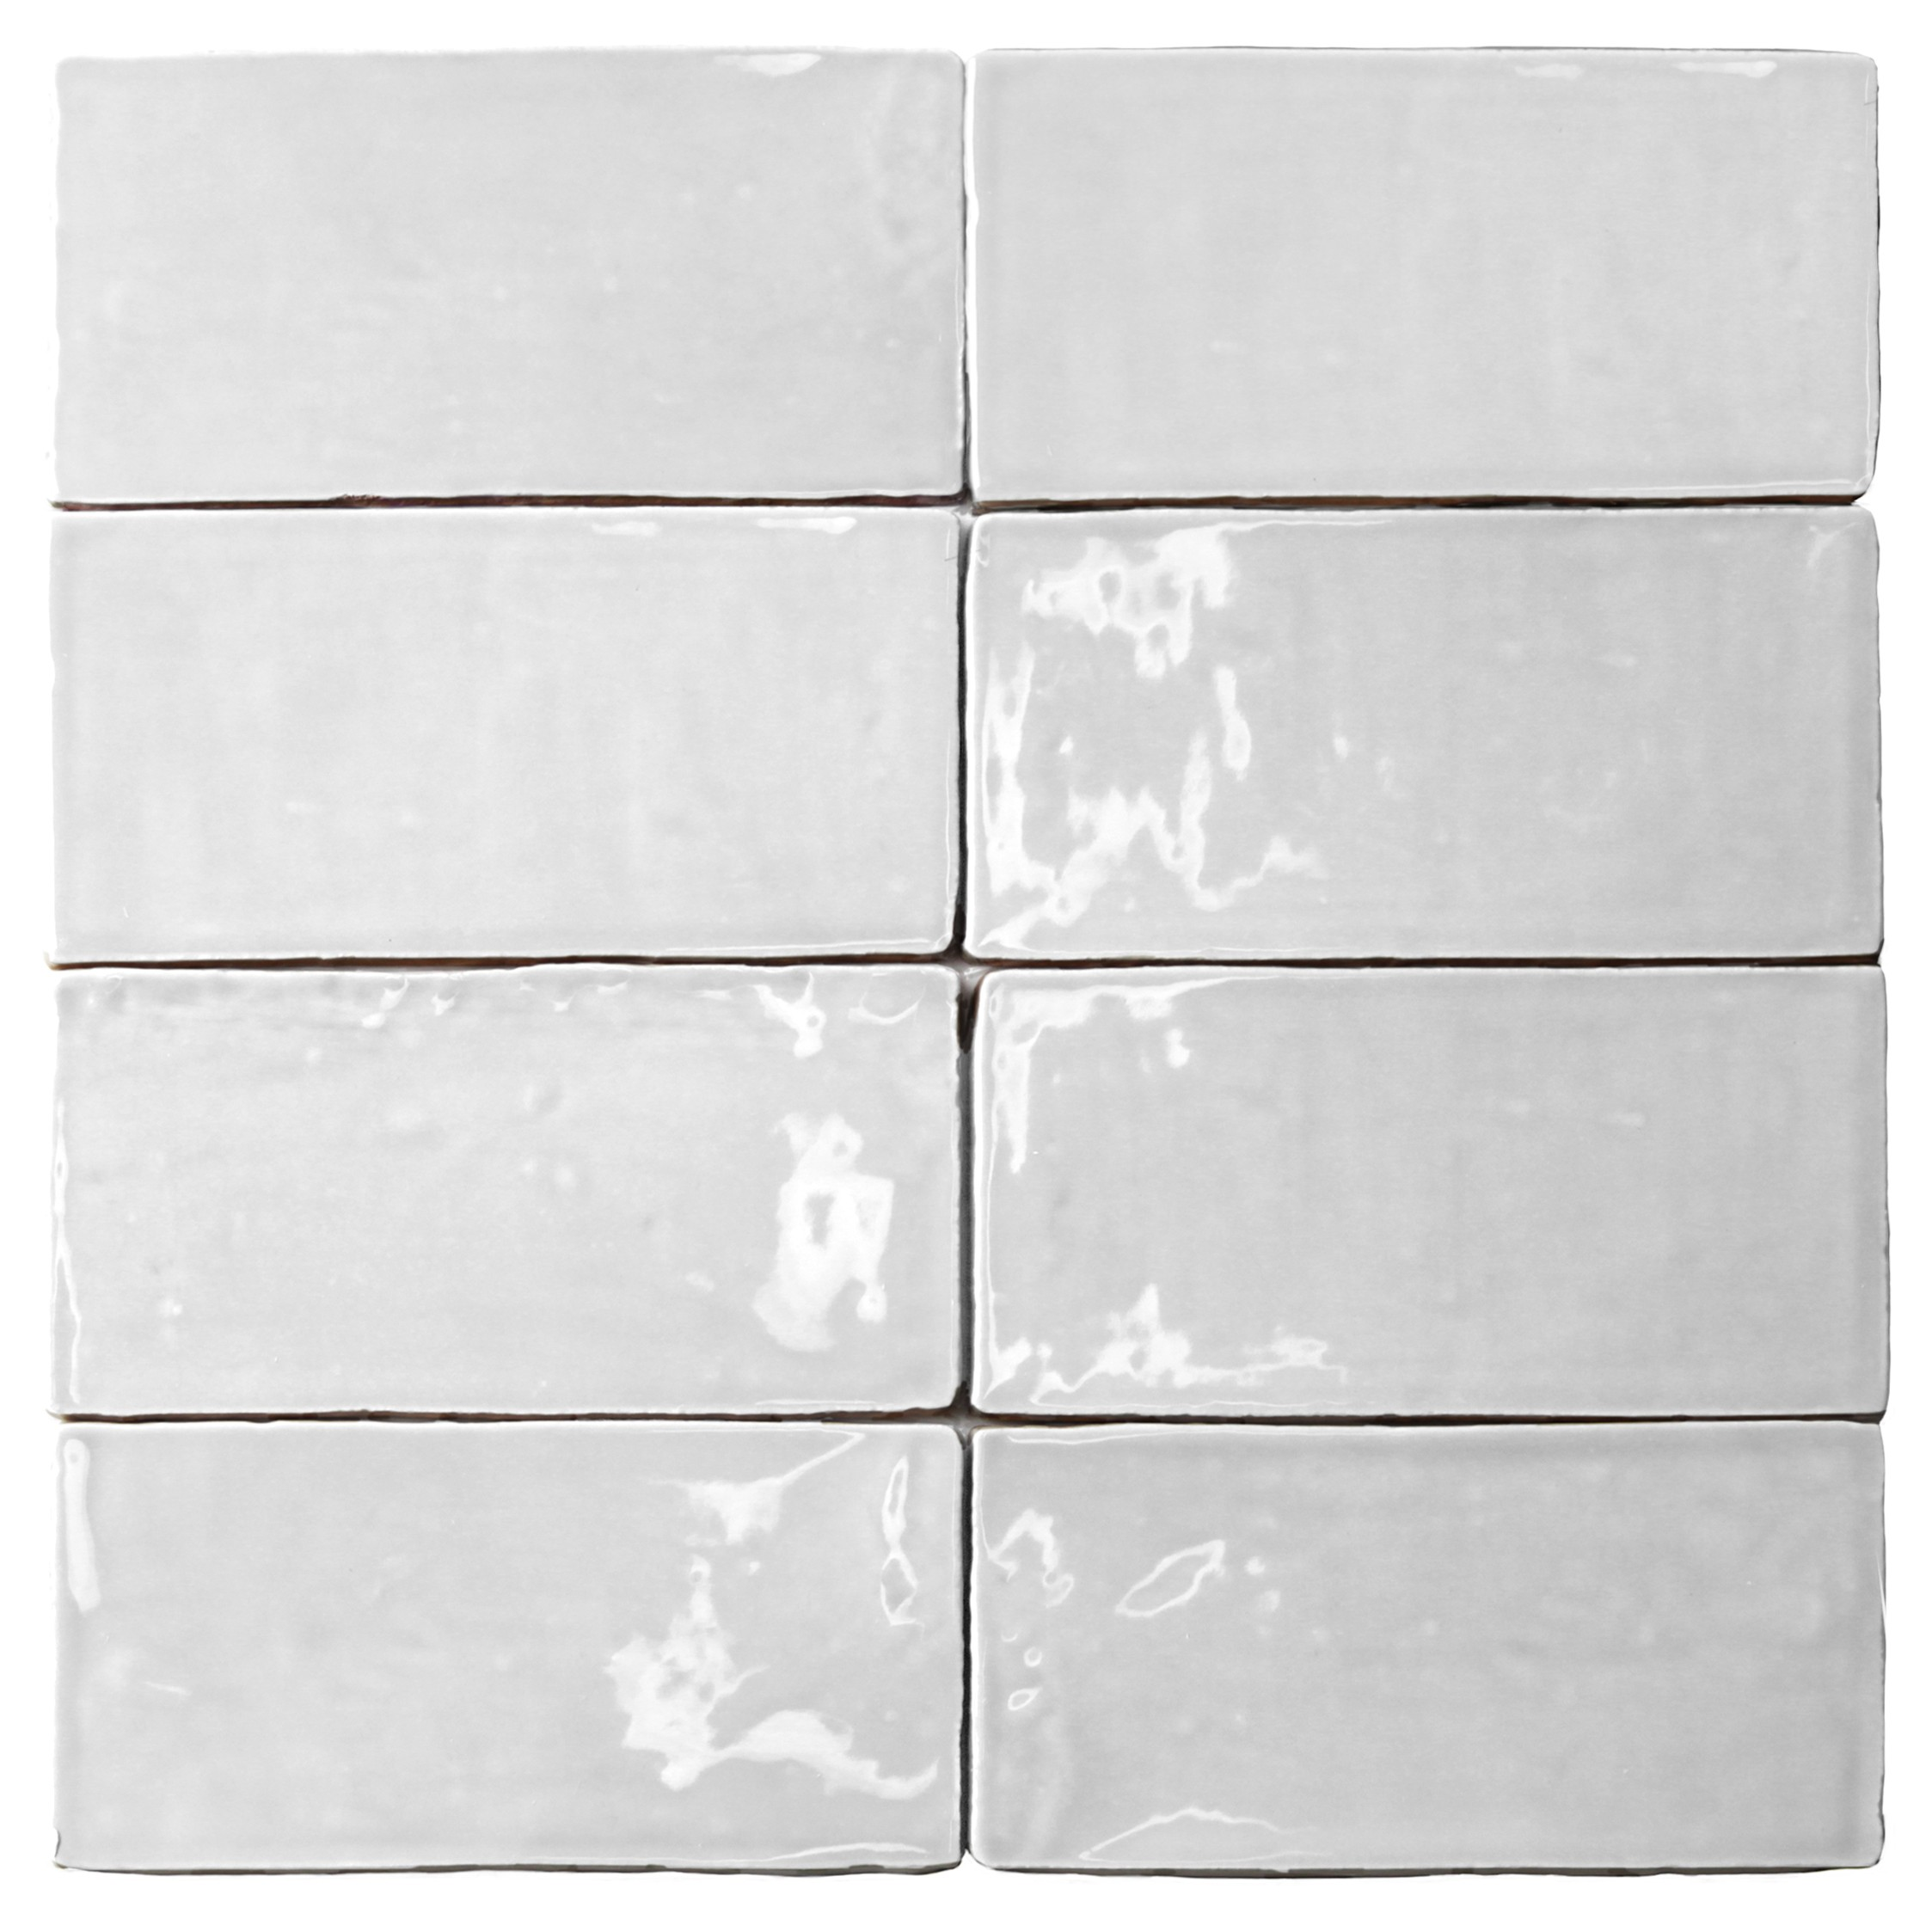 Shop for lancaster bianco 3x6 ceramic tiles at Ceramic tile store